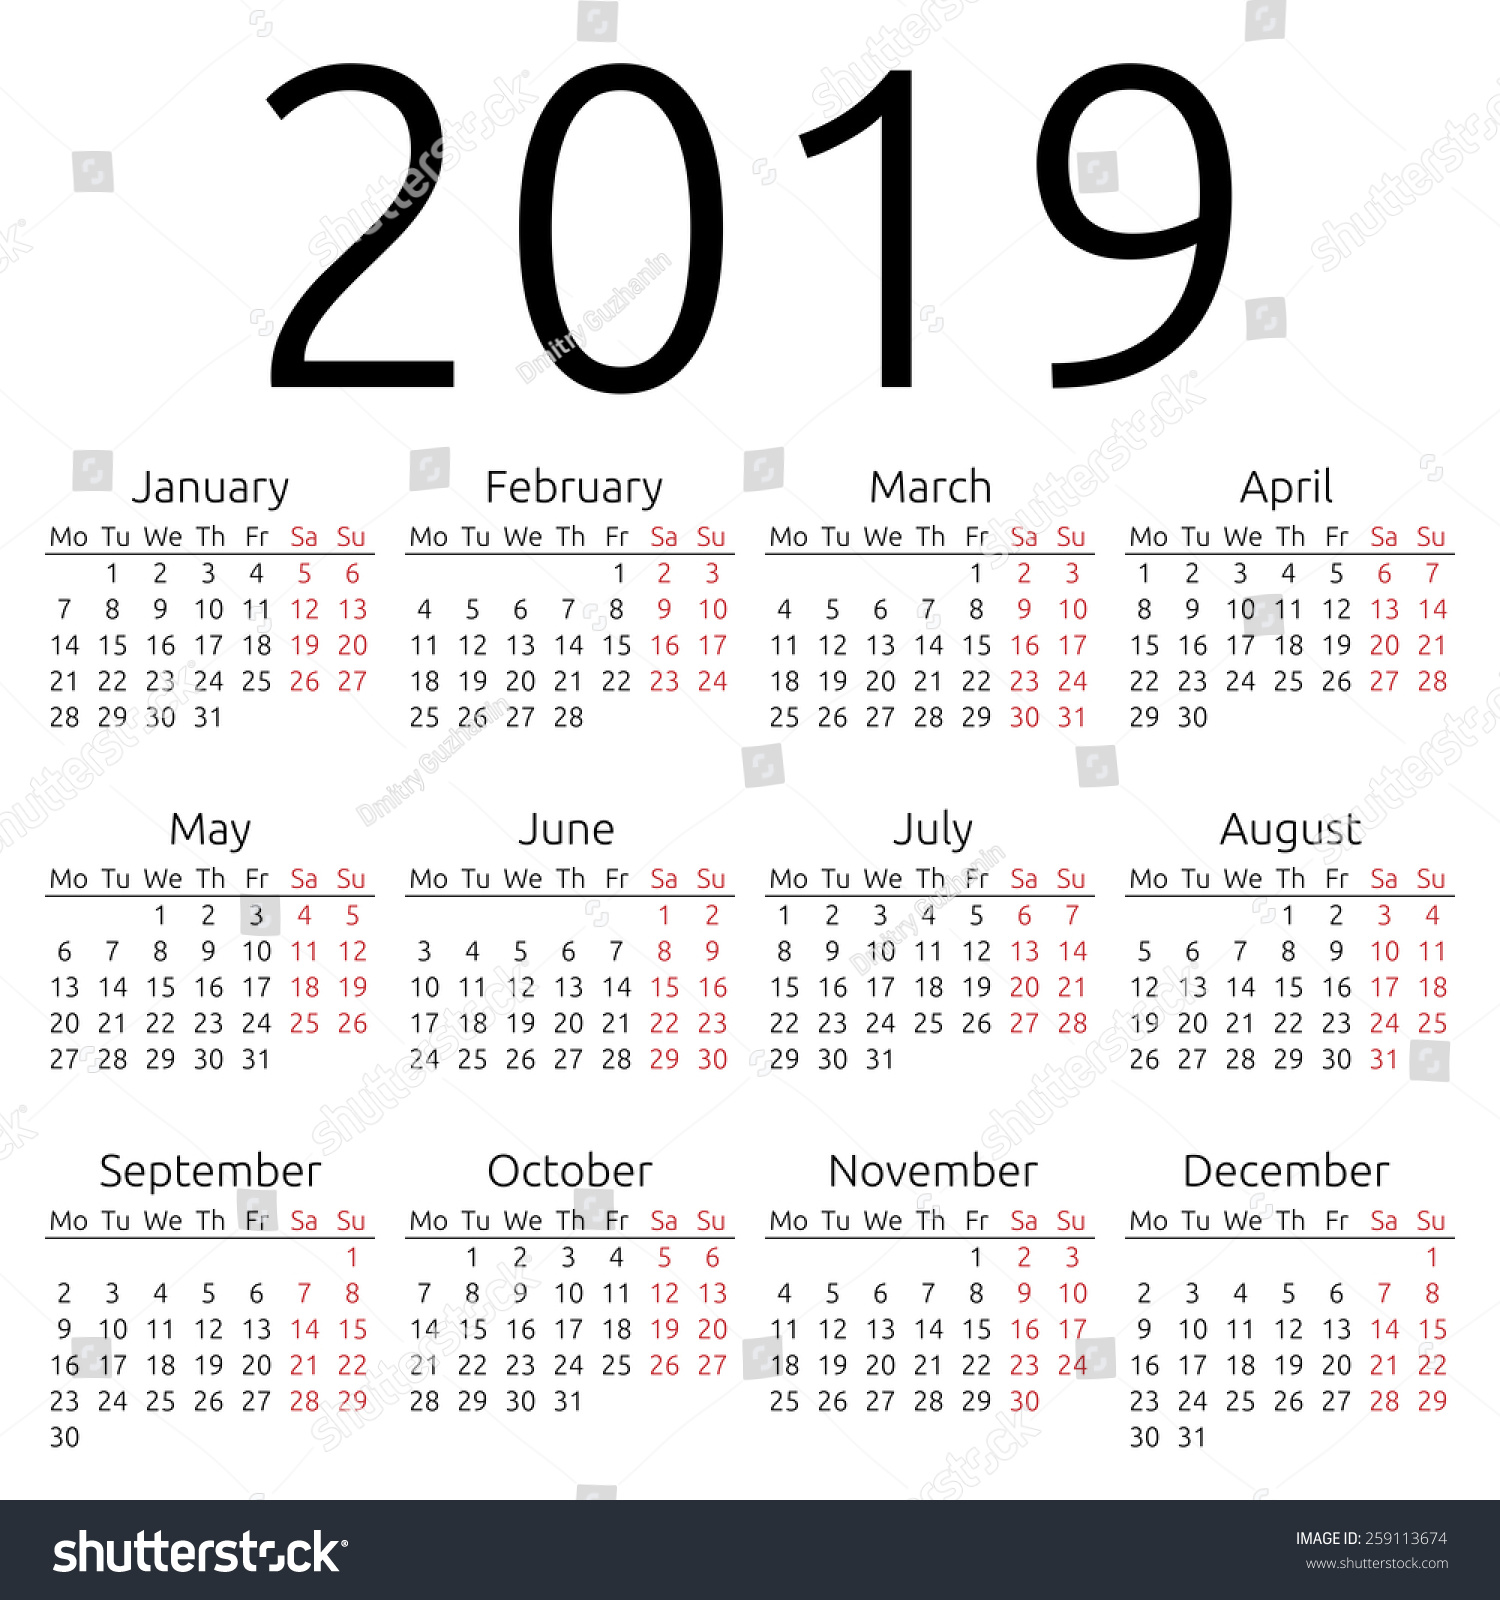 Create A Calendar That Starts On Saturday Holidays Worldwide Time And Date Simple 2019 Year Calendar Eps 8 Stock Vector 259113674